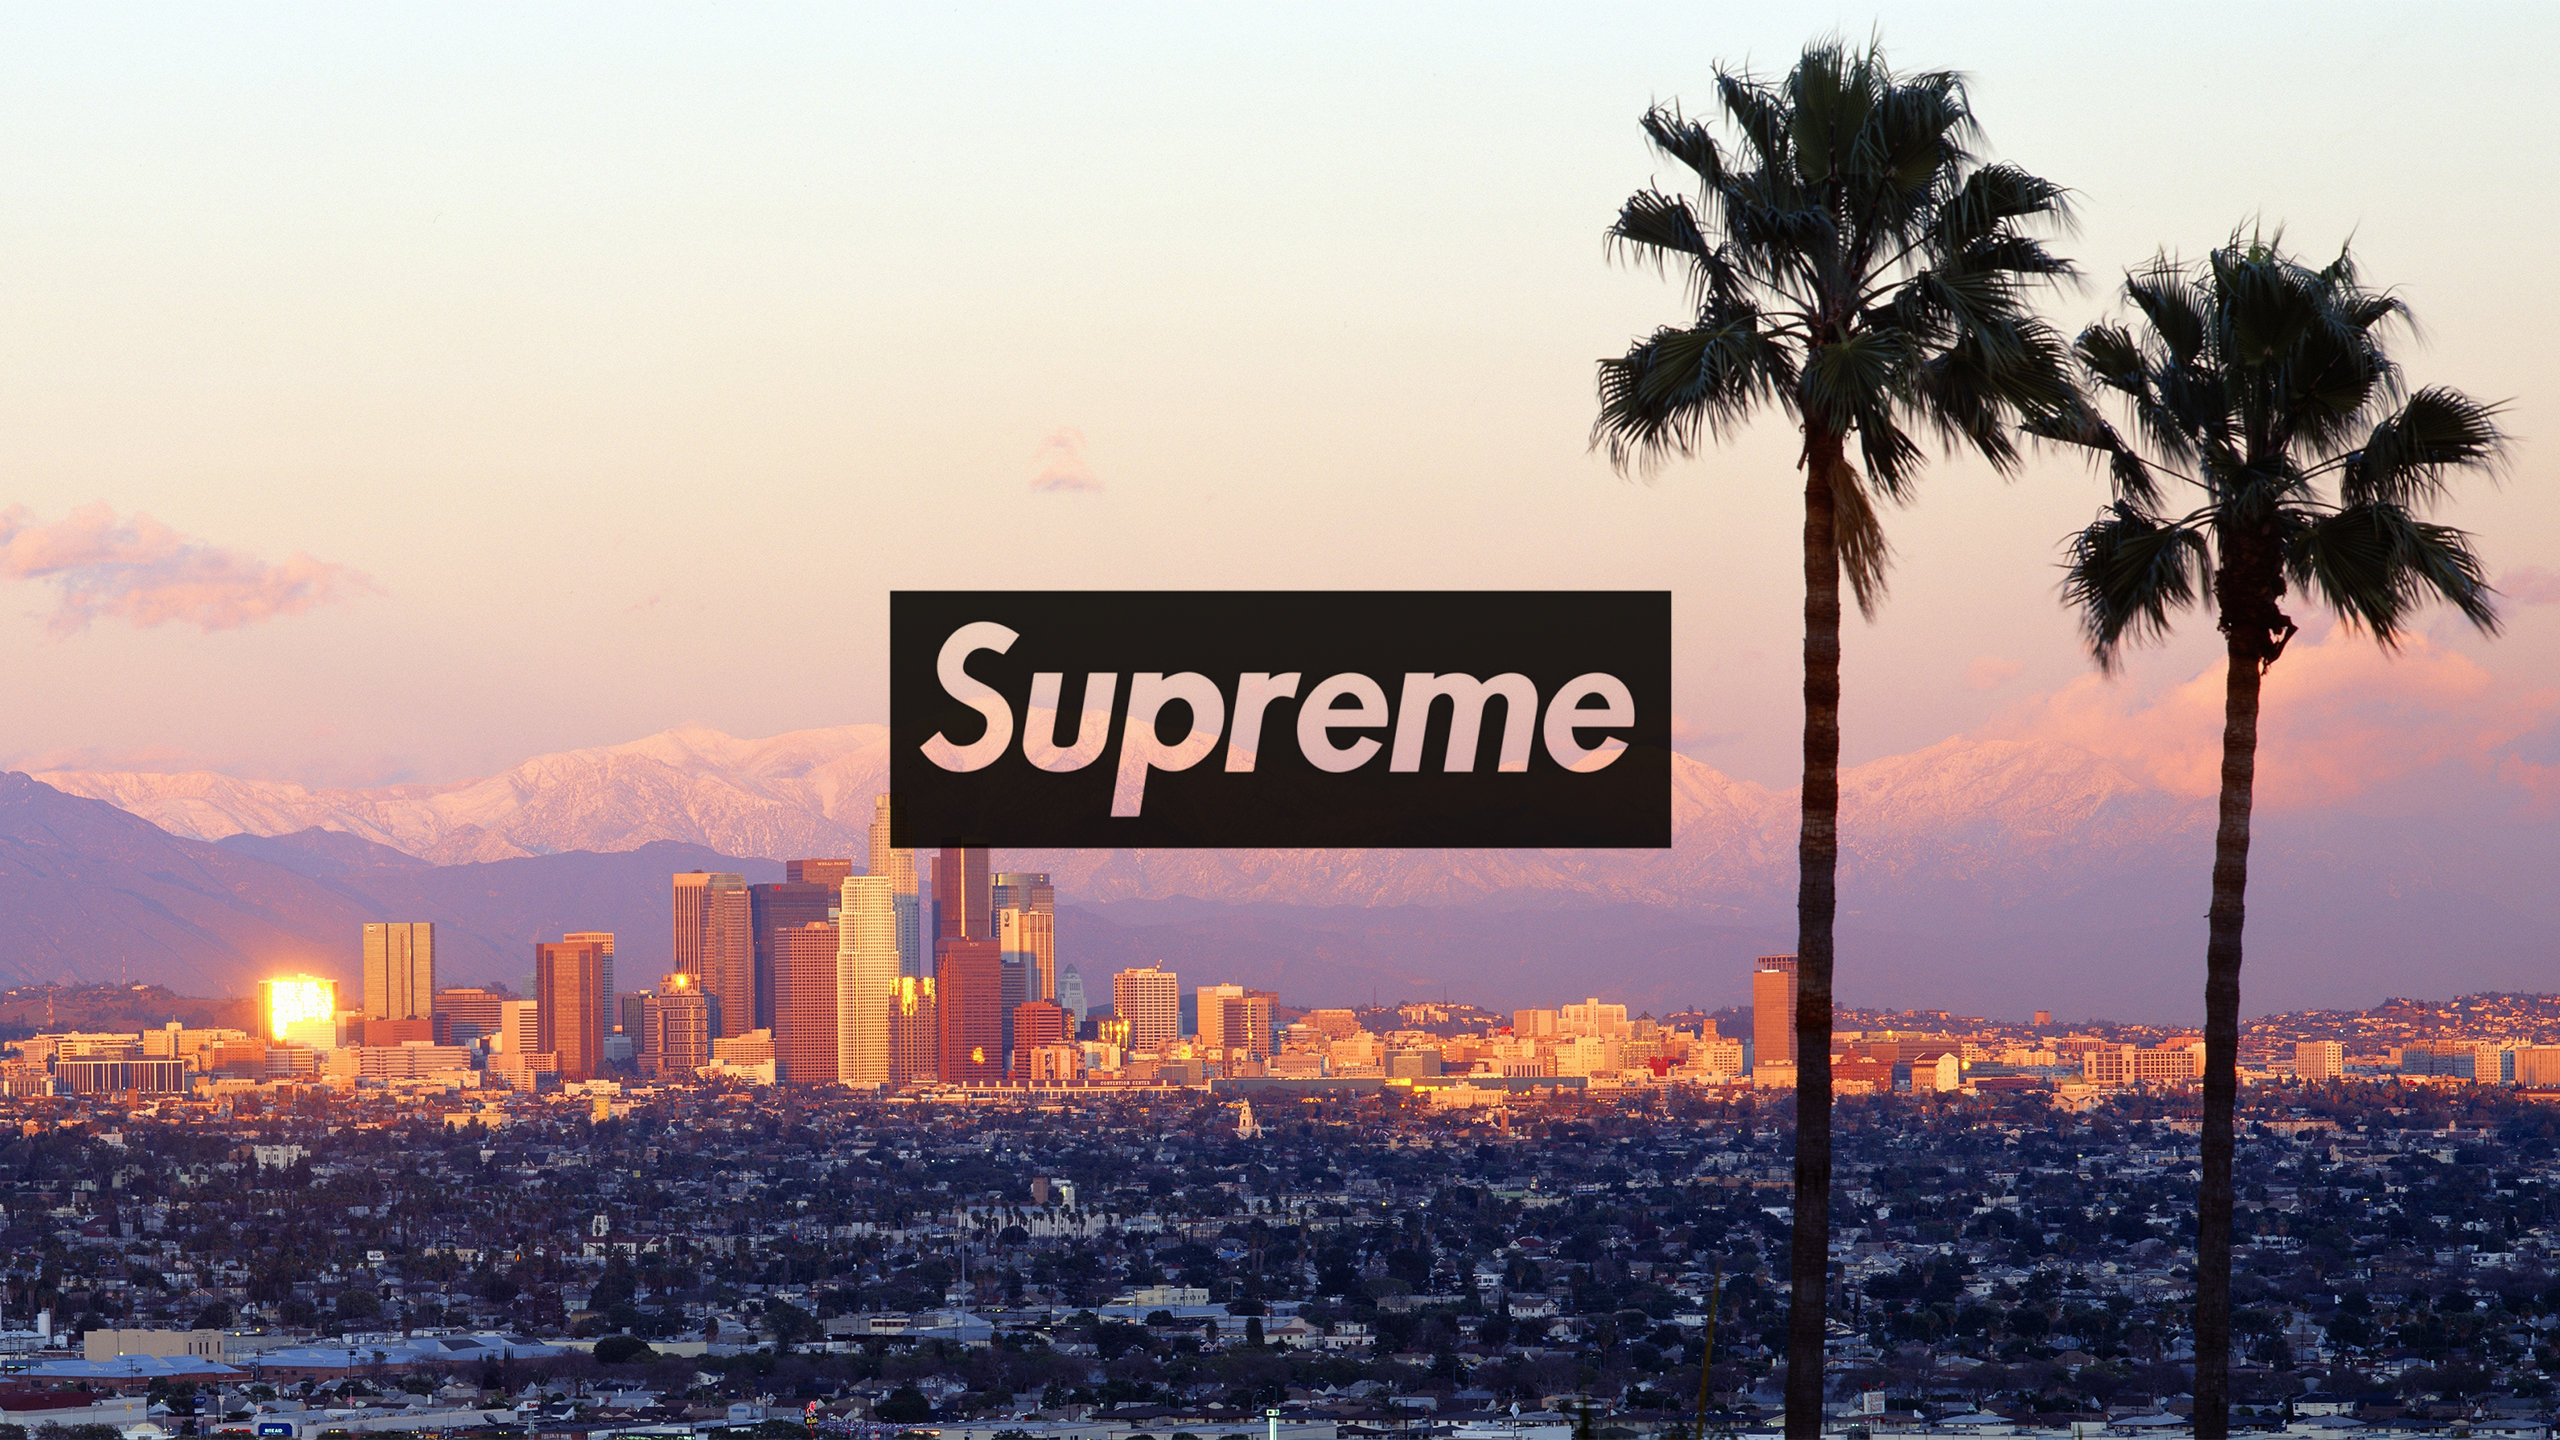 Supreme Wallpapers   Download Supreme HD Wallpapers 2560x1440